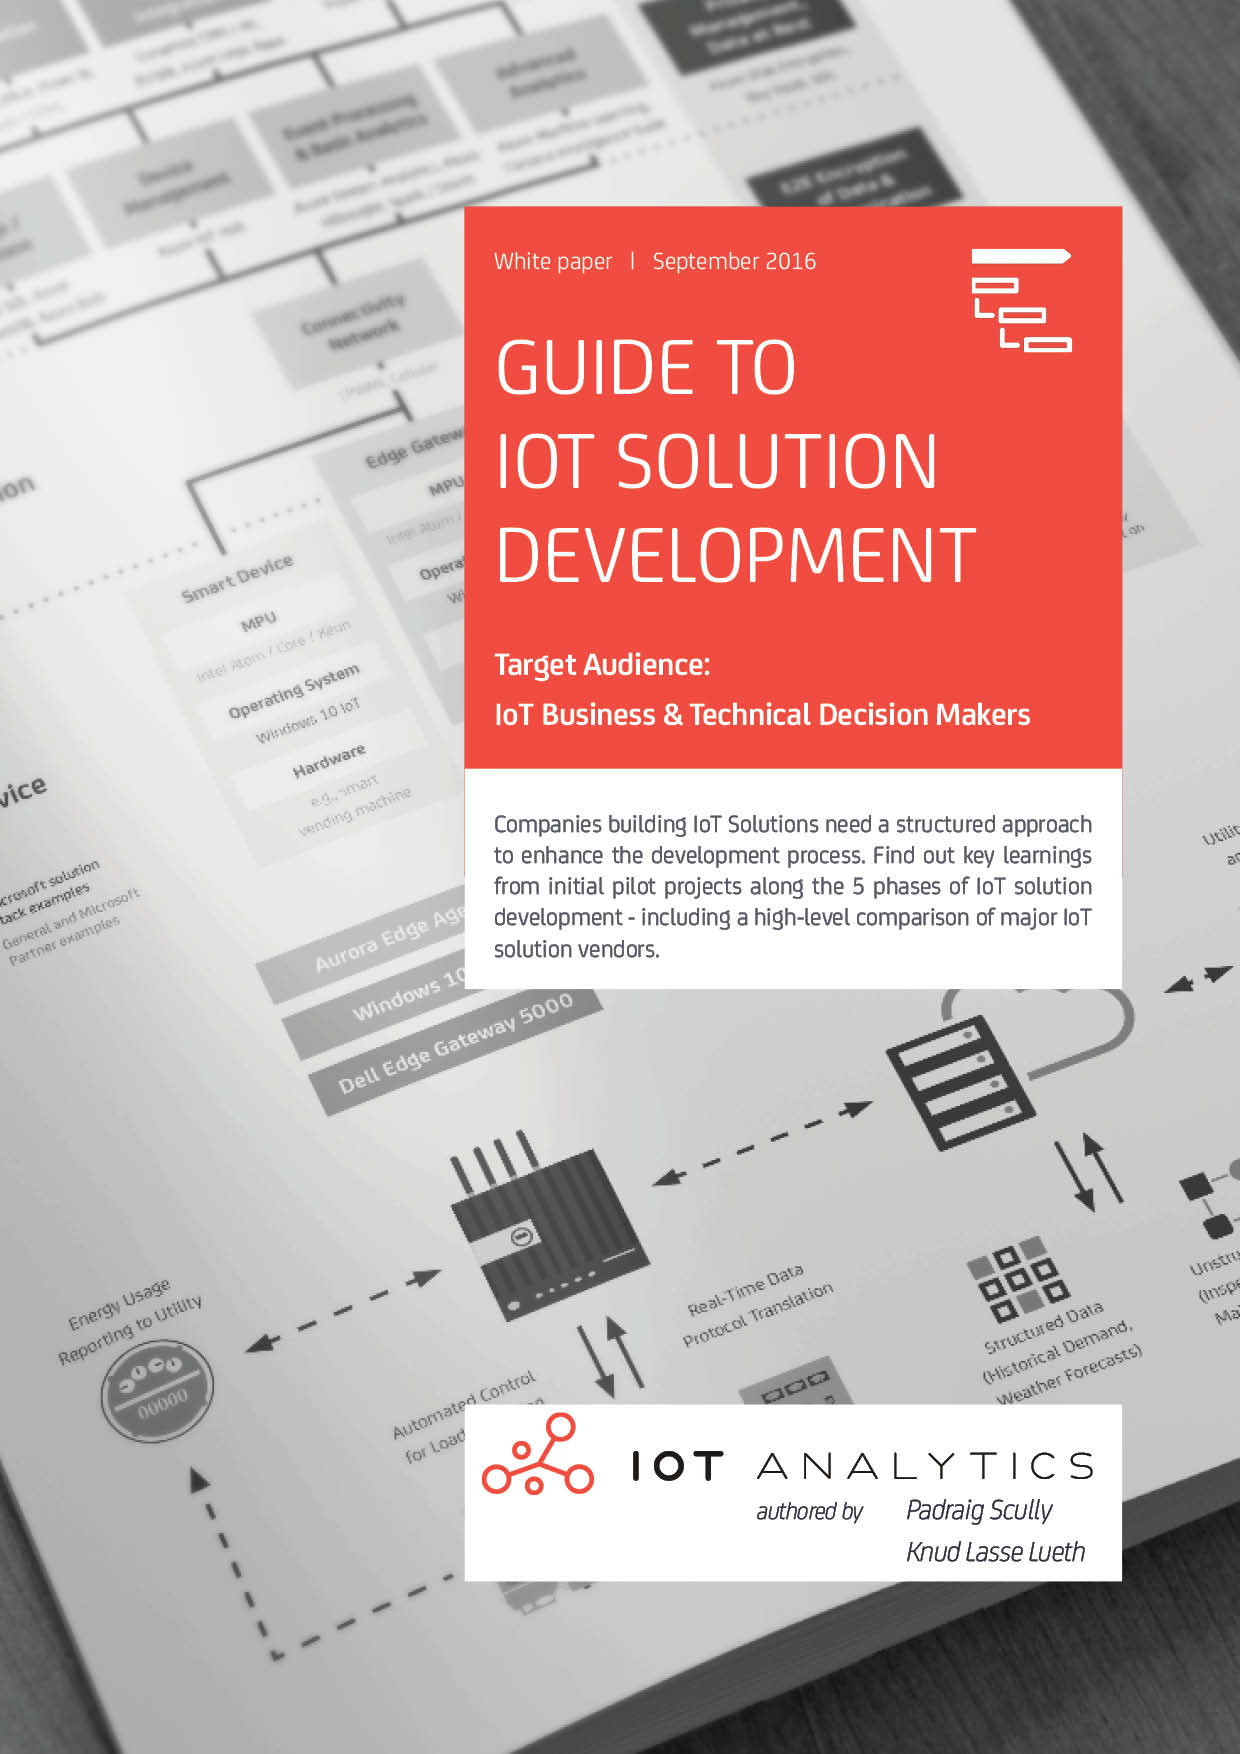 iot analytics the white paper guide to iot the white paper middot iot solution development blueprint